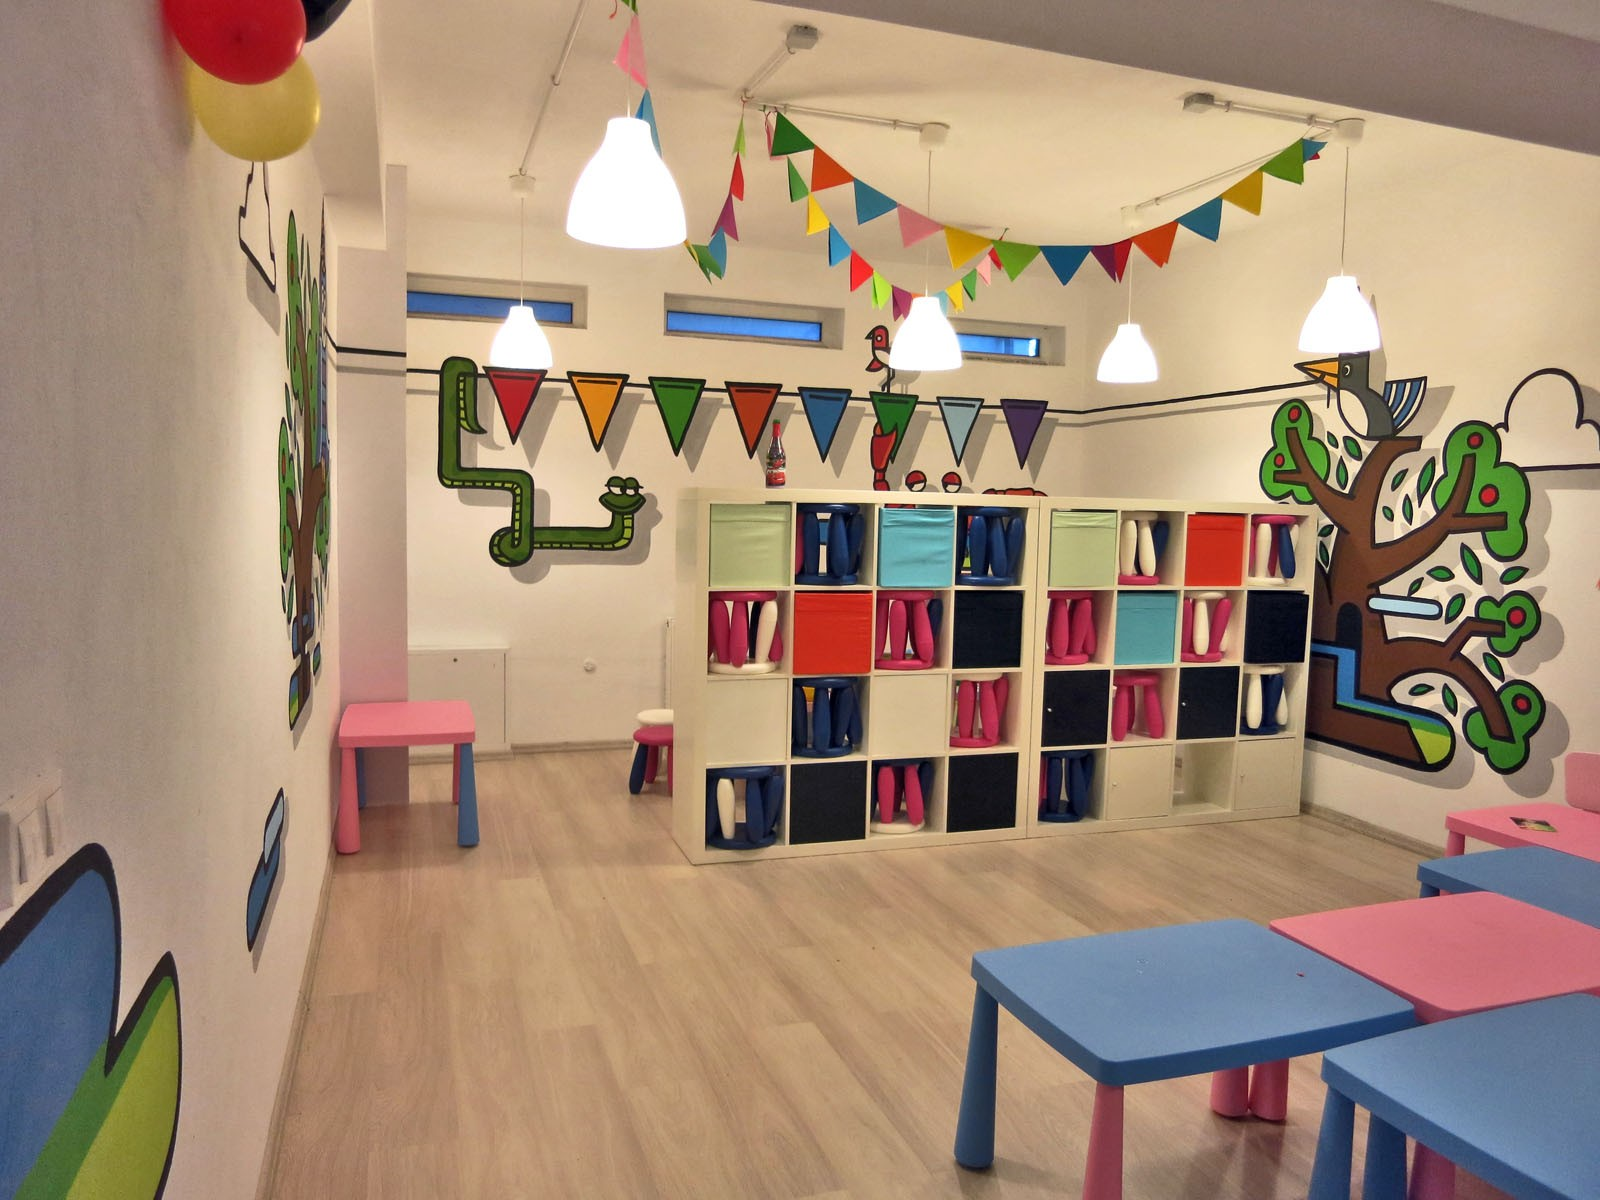 City Zoo wall design on children's playroom walls - Stara Milosna | Playroom | Portfolio